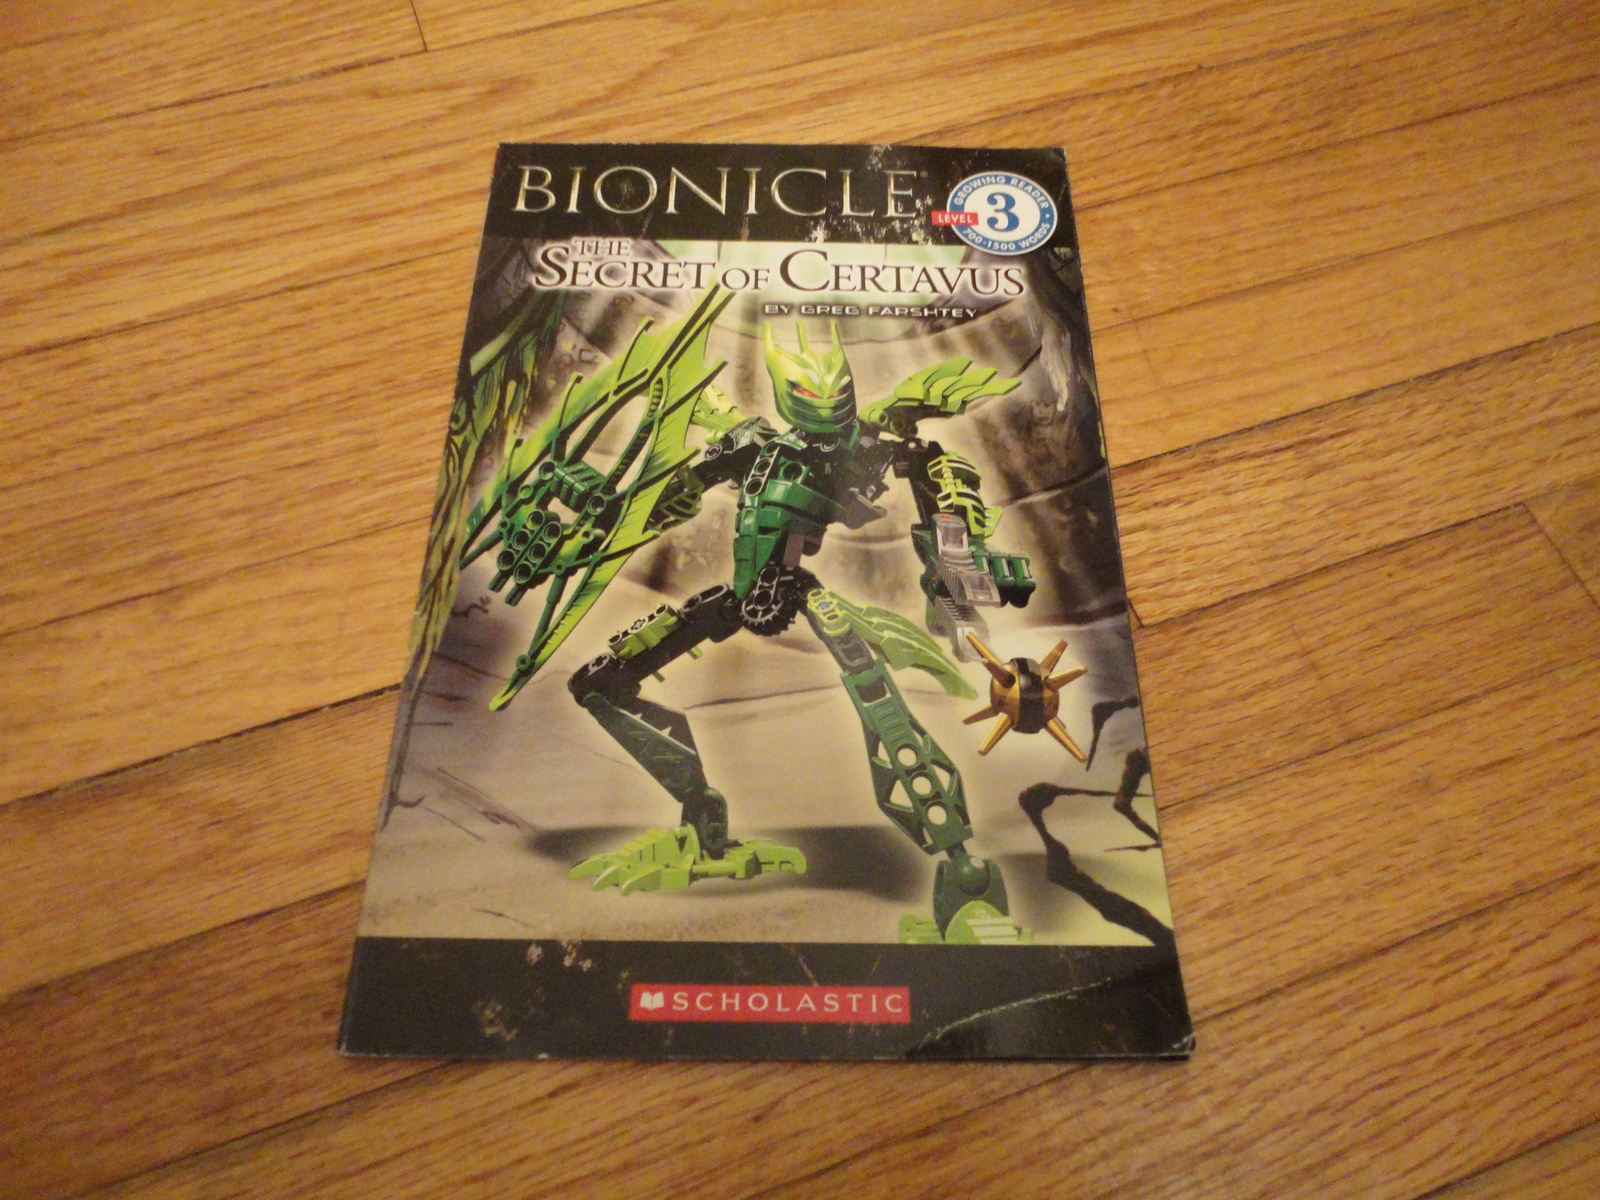 BOOK Greg Farshtey 'Bionicle: Secret of Certavus' Growing Reader Level 3 PB 2009